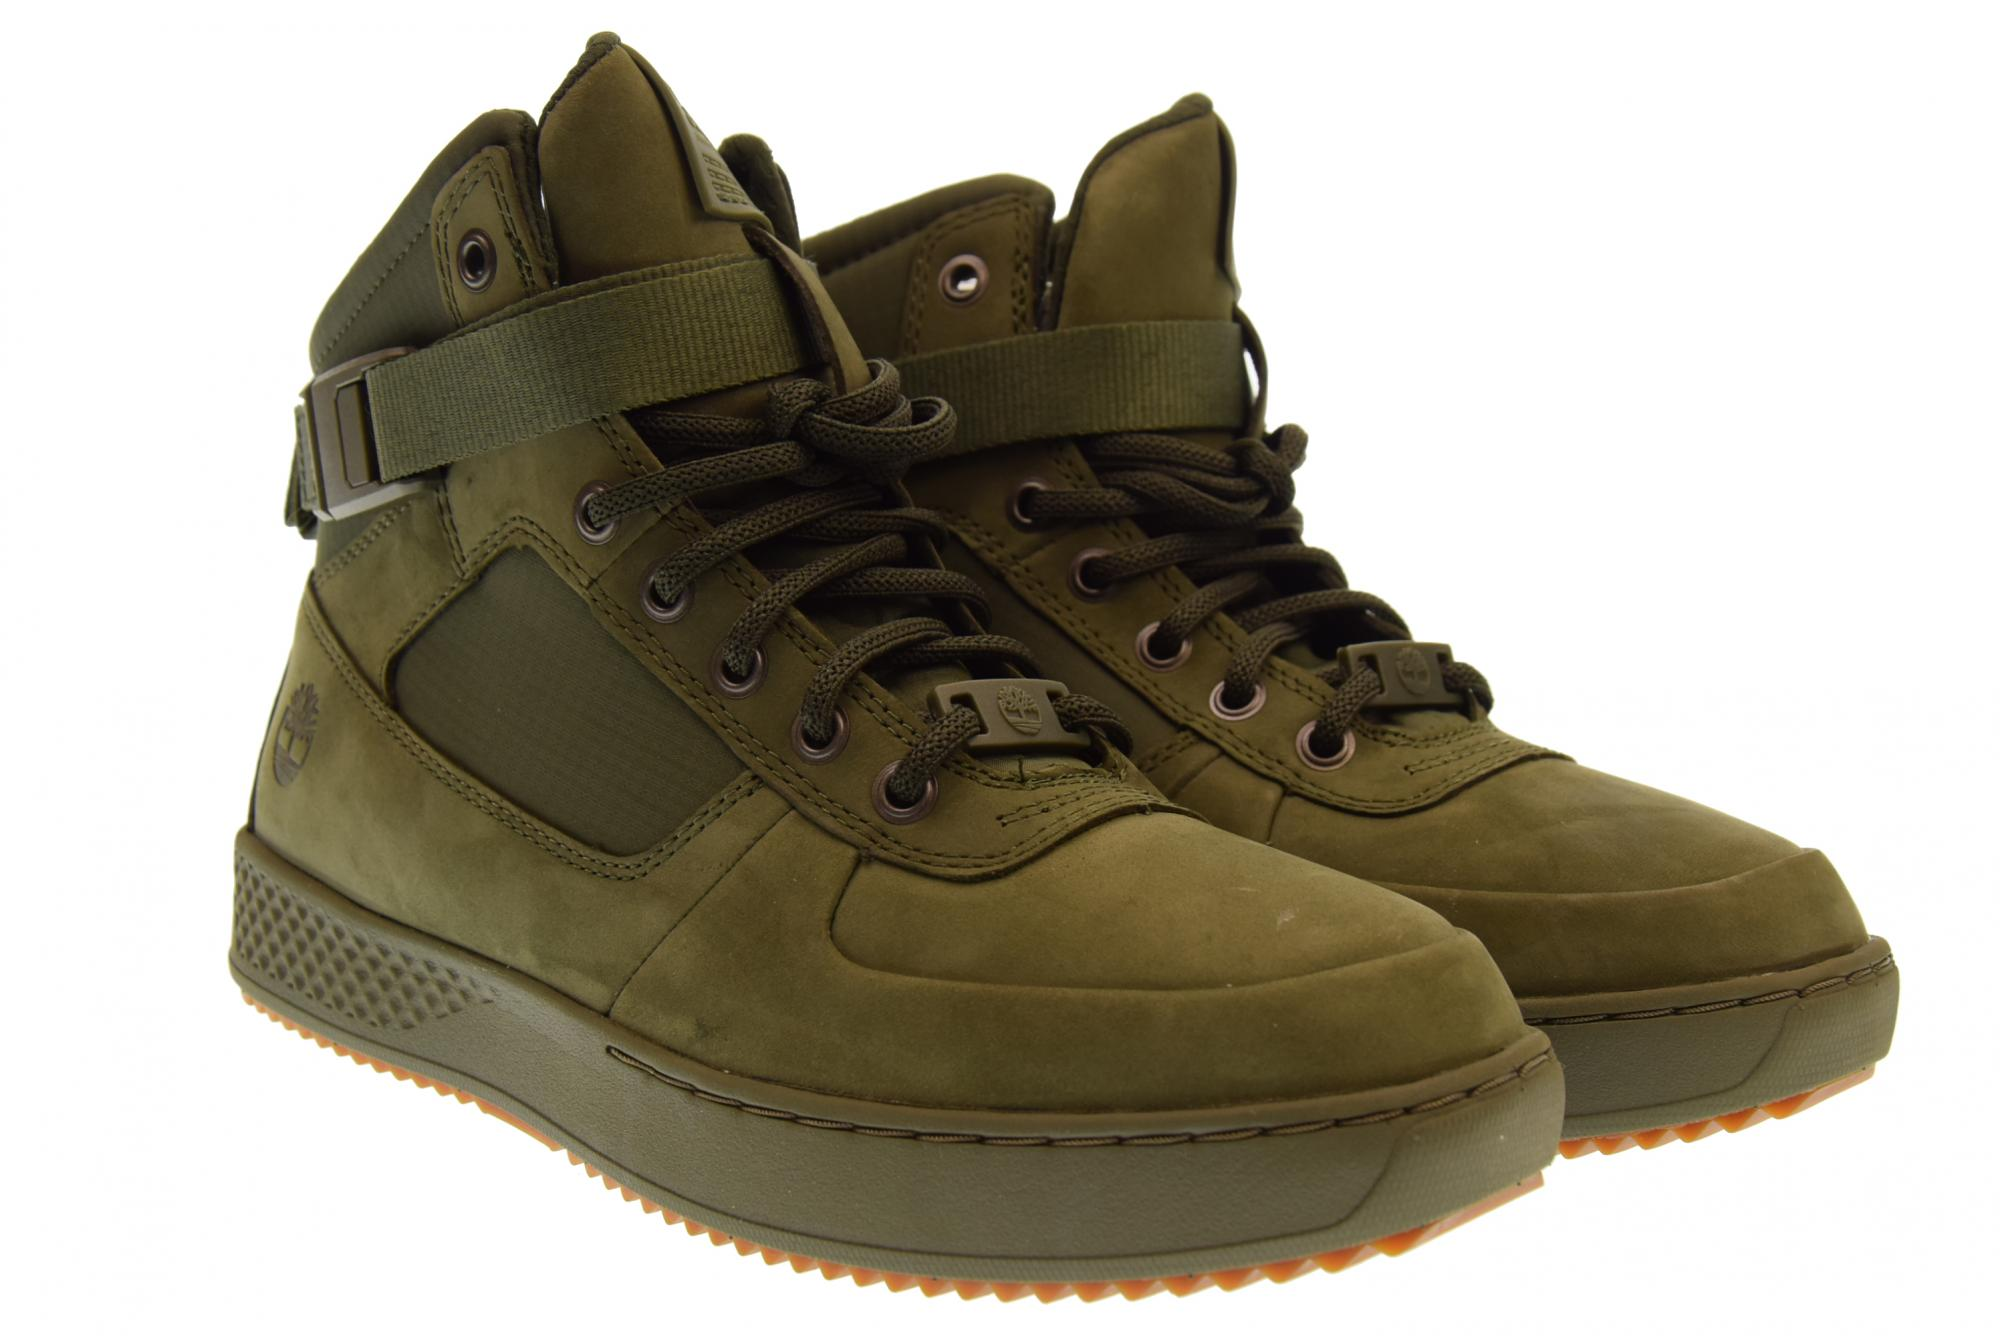 aafbcfabd27 Details about Timberland A18u shoes man high sneakers A1S8I